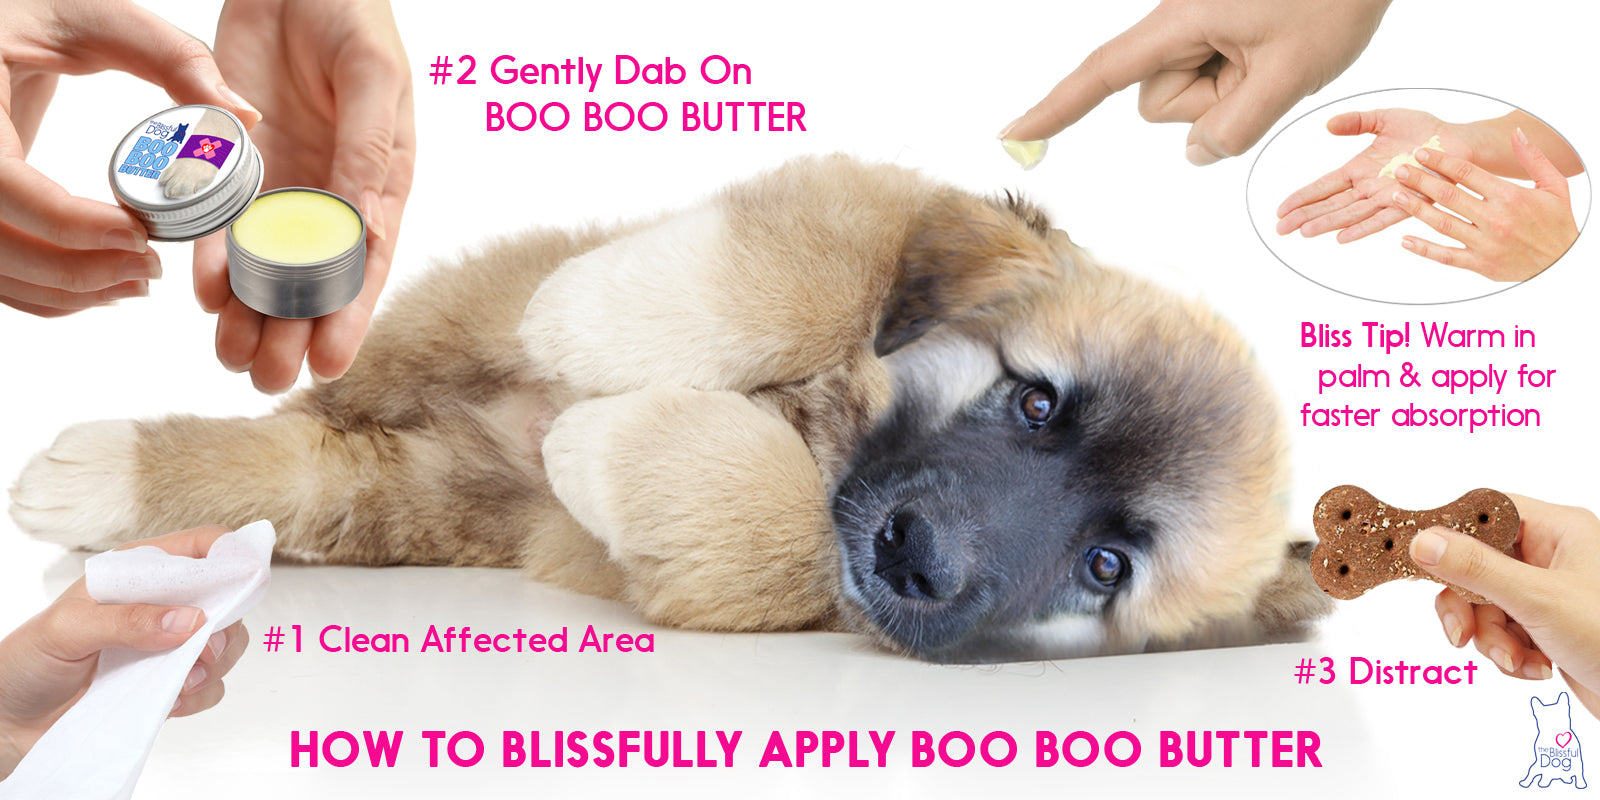 How to apply BOO BOO BUTTER